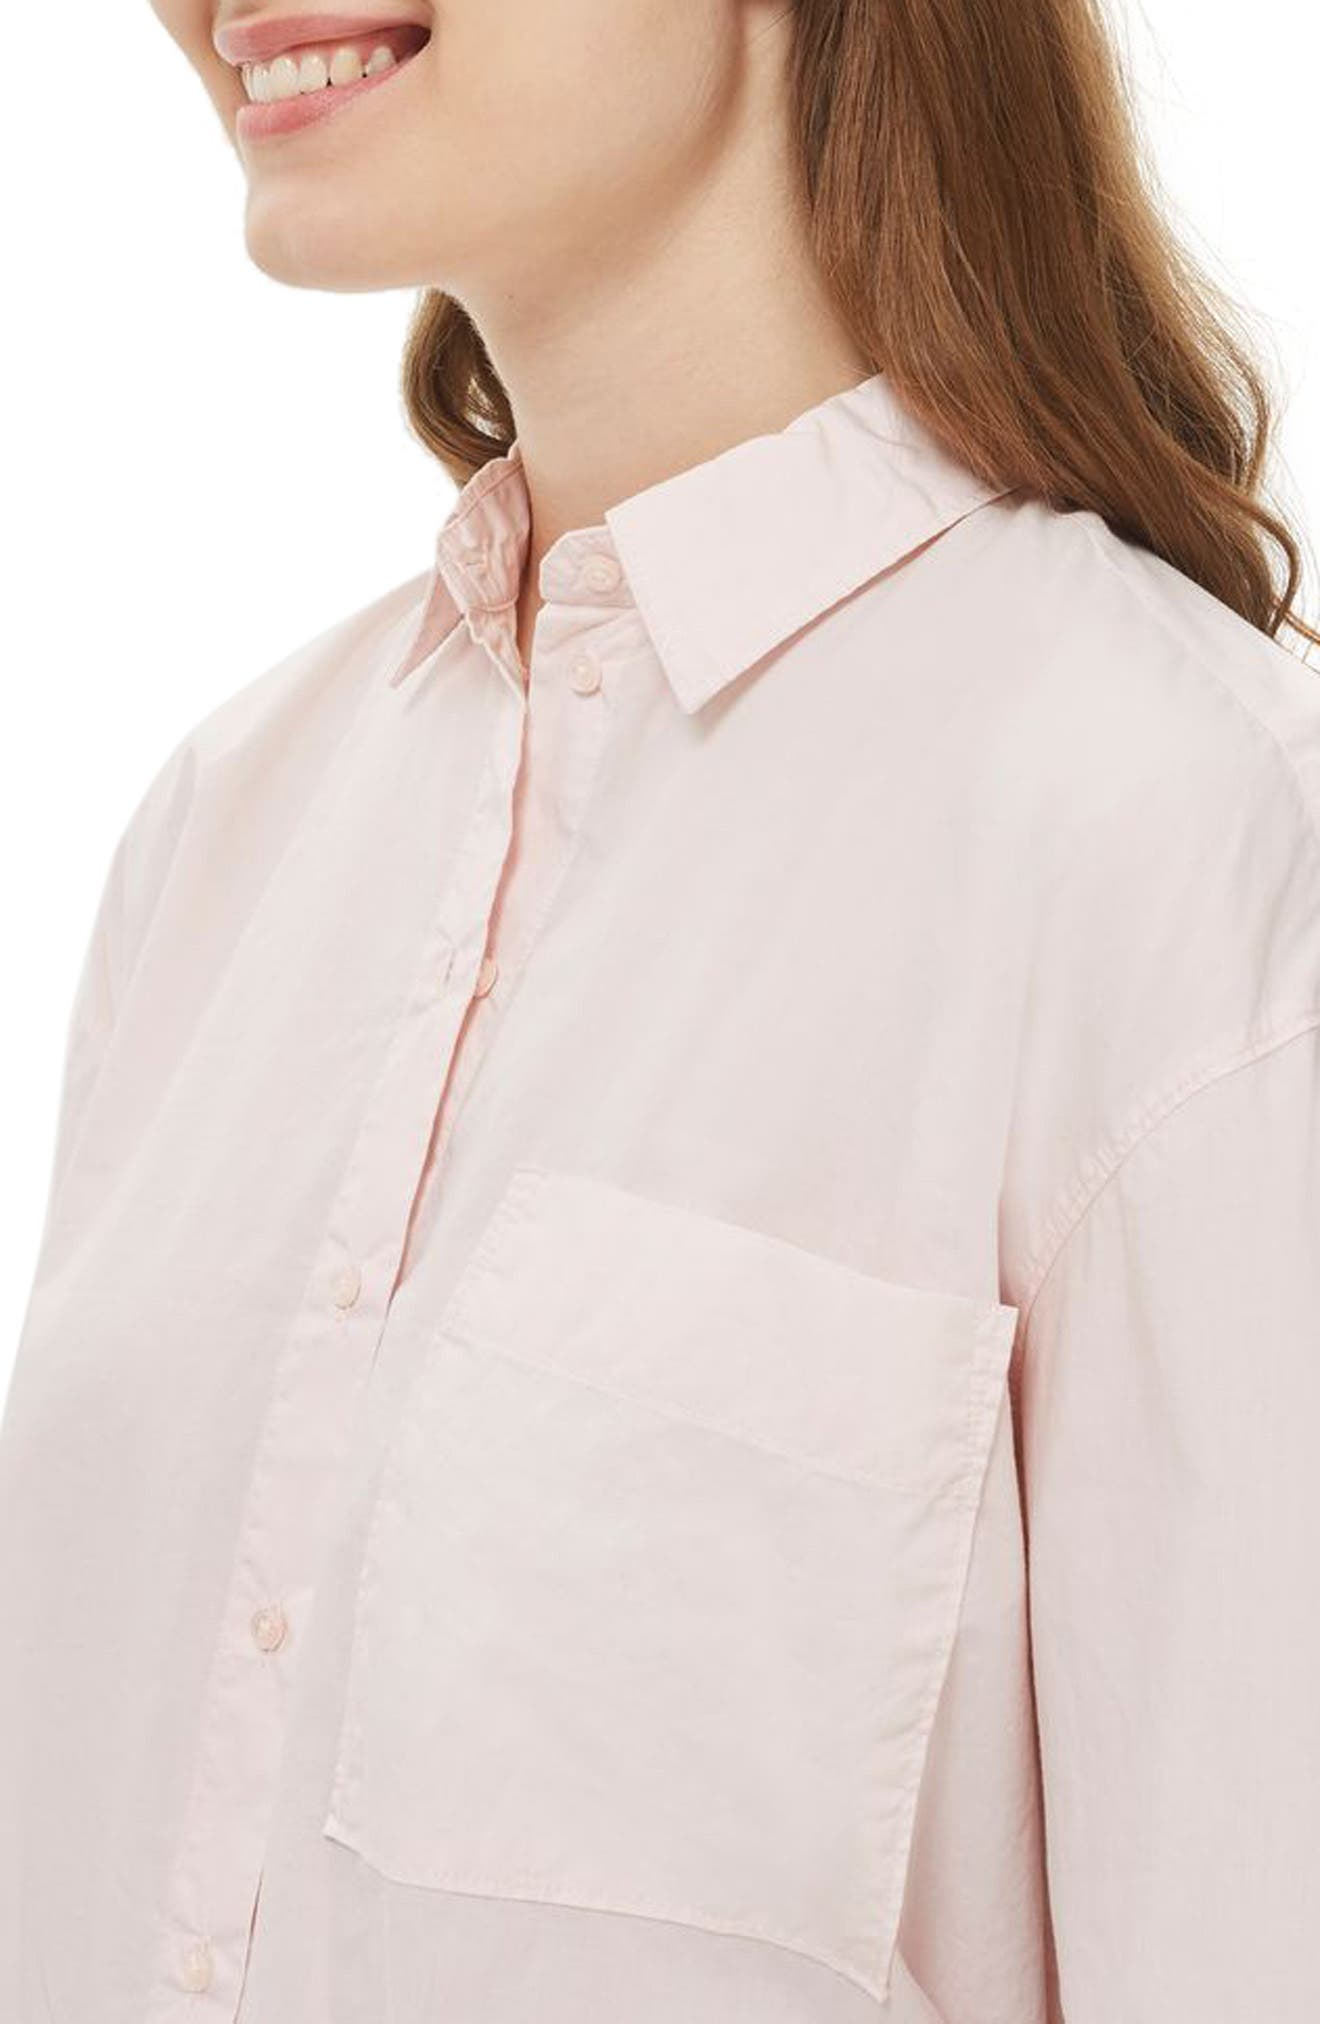 Olly Oversize Poplin Shirt,                             Alternate thumbnail 3, color,                             680